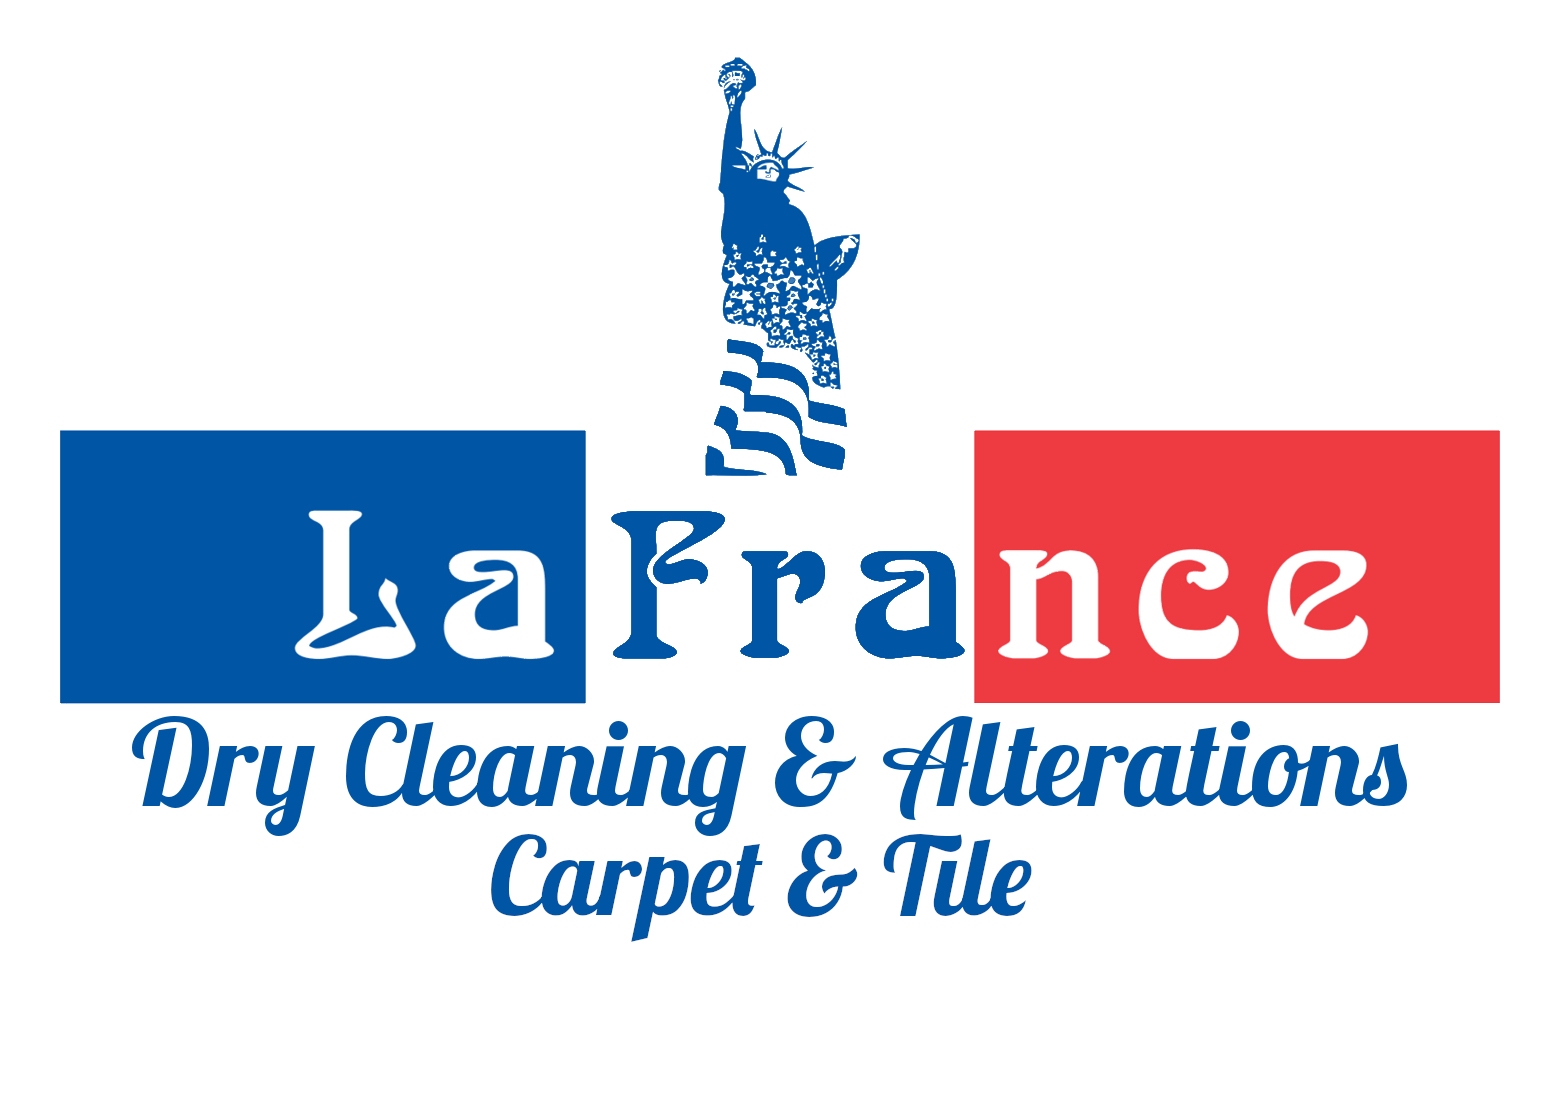 La France Dry Cleaners Alterations Carpet Tile The Most Trusted Name In Cleaning Services